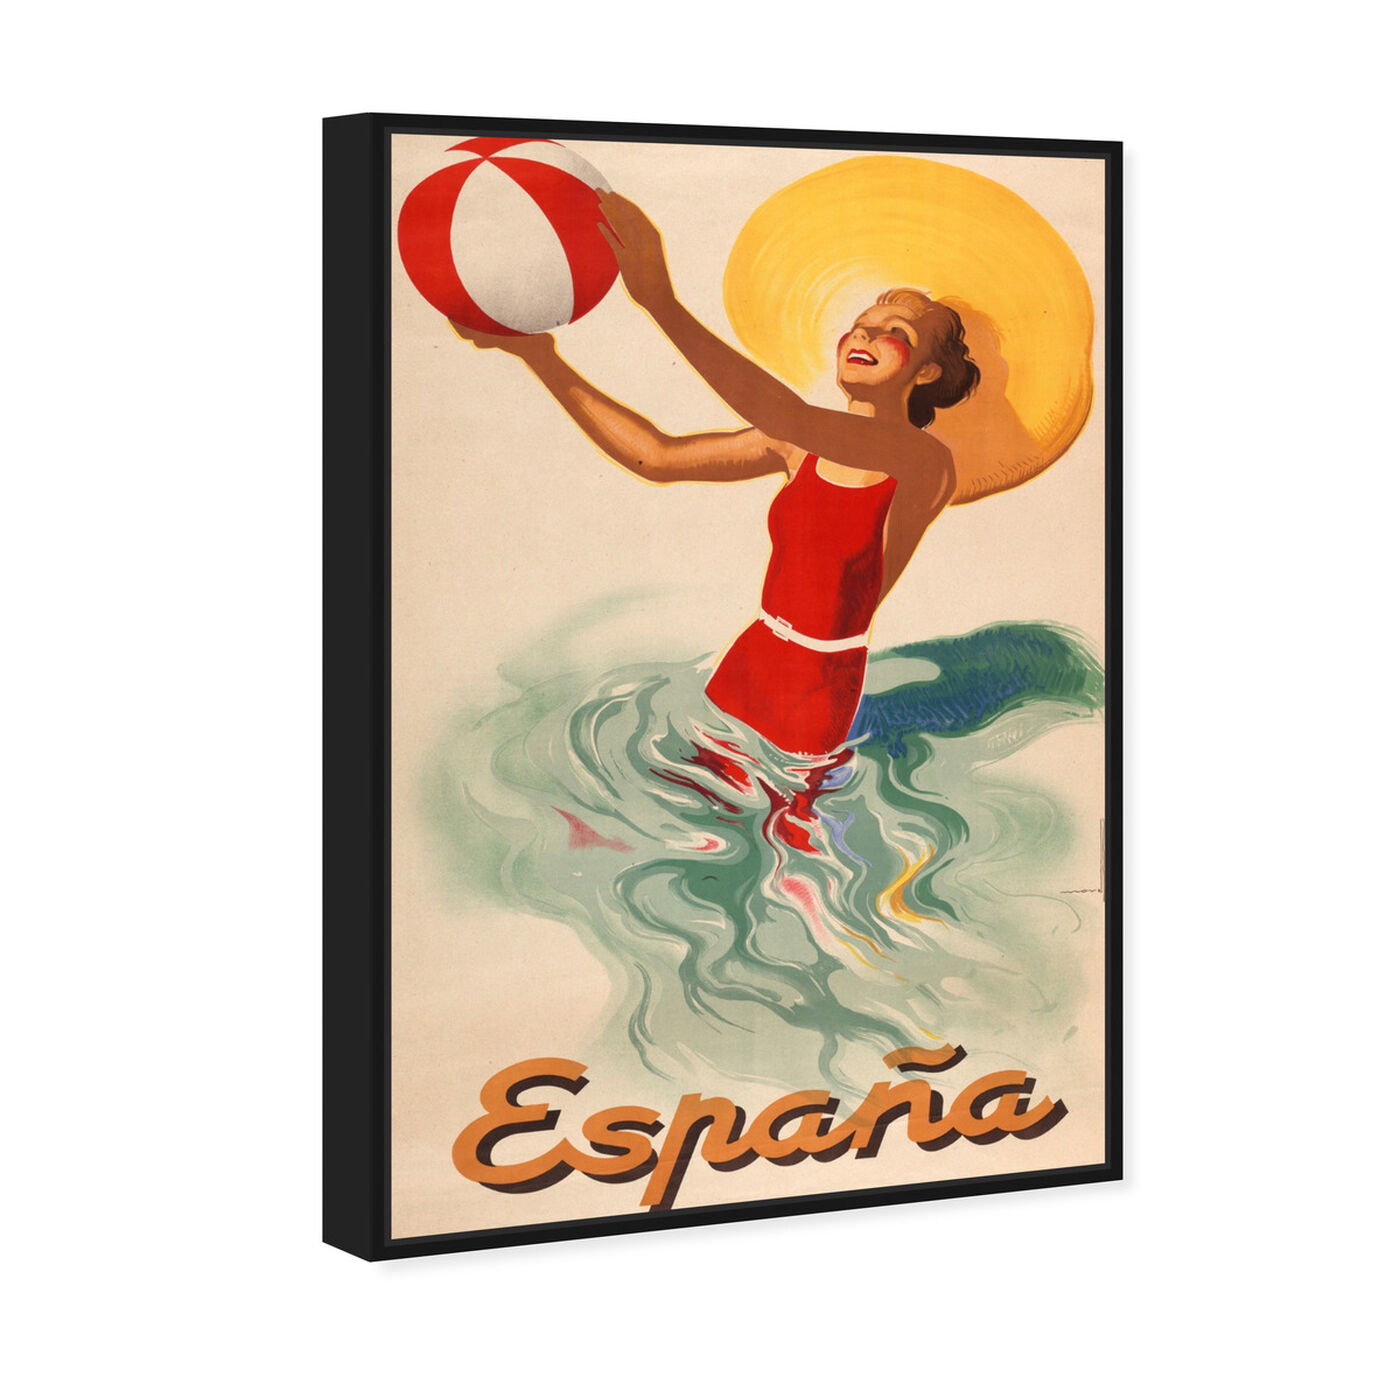 Angled view of Espana Playa 1920s featuring advertising and posters art.